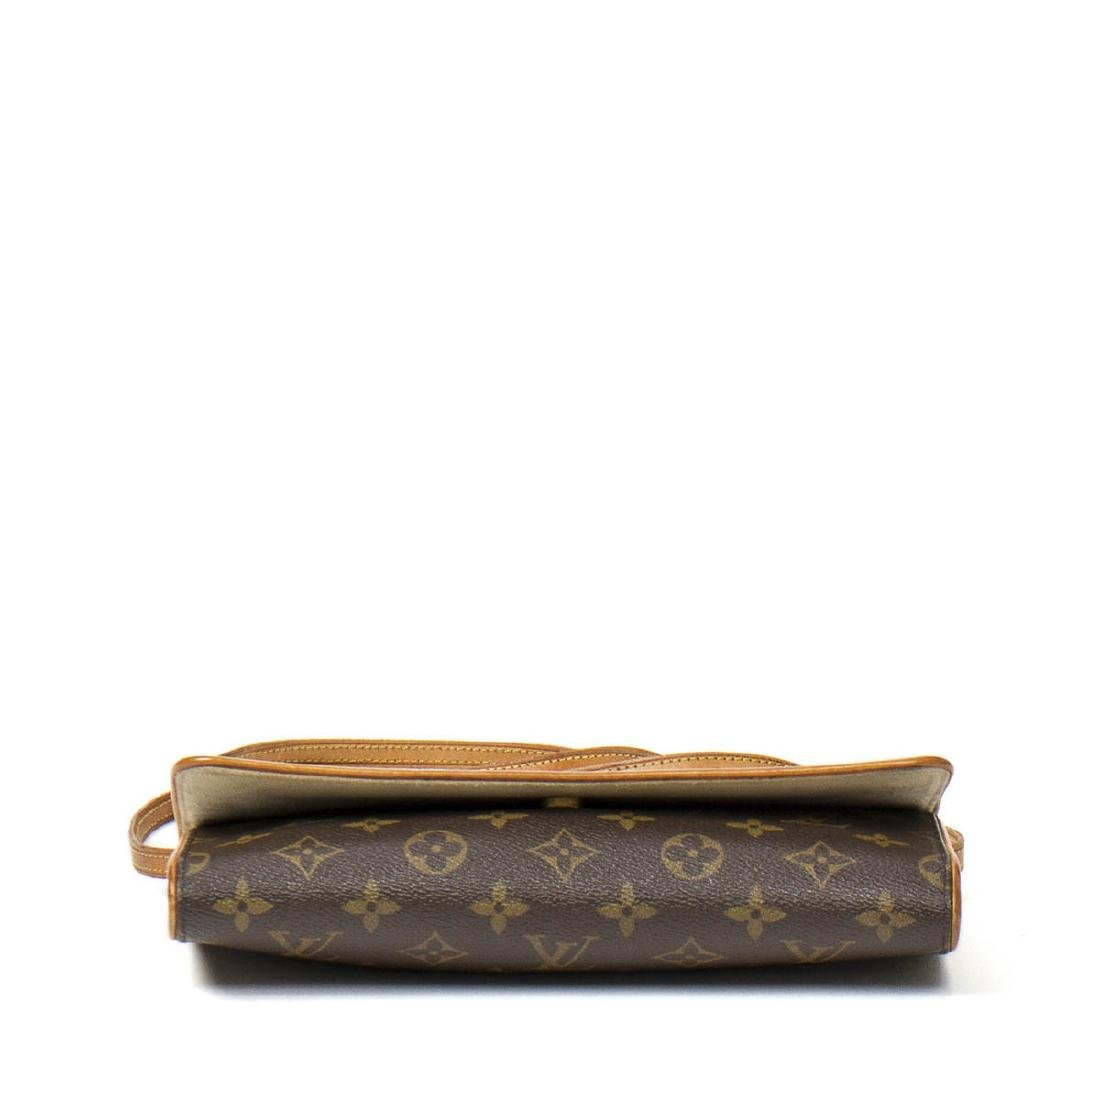 Louis Vuitton Twin GM in Brown Monogram Canvas - 6